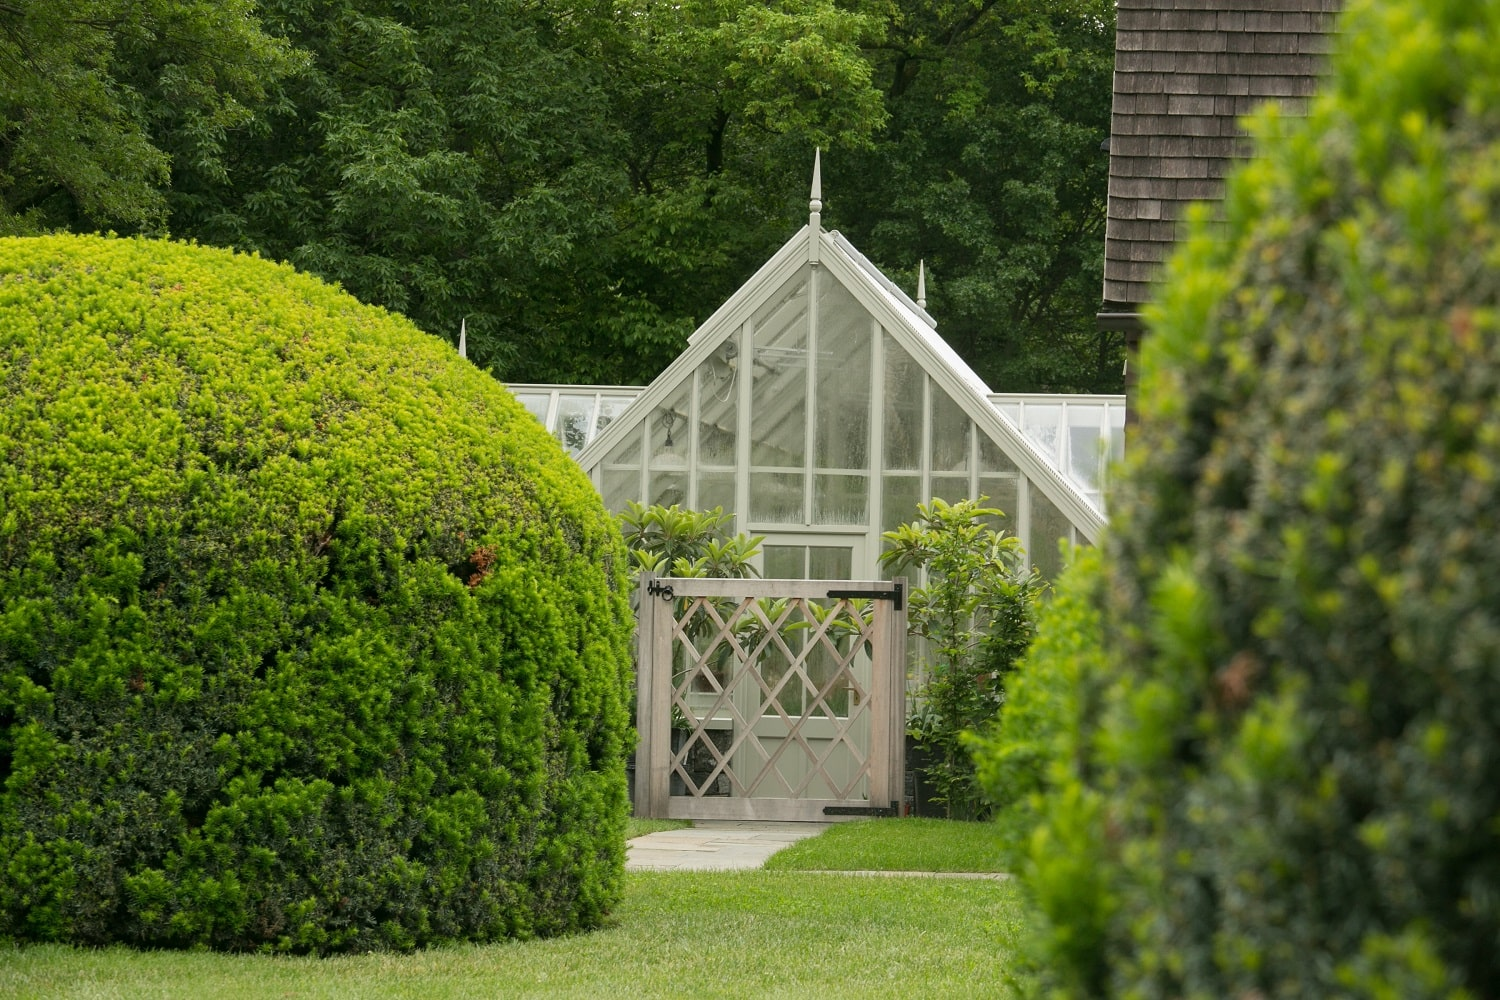 The Exterior of Alitex's Victorian Greenhouse